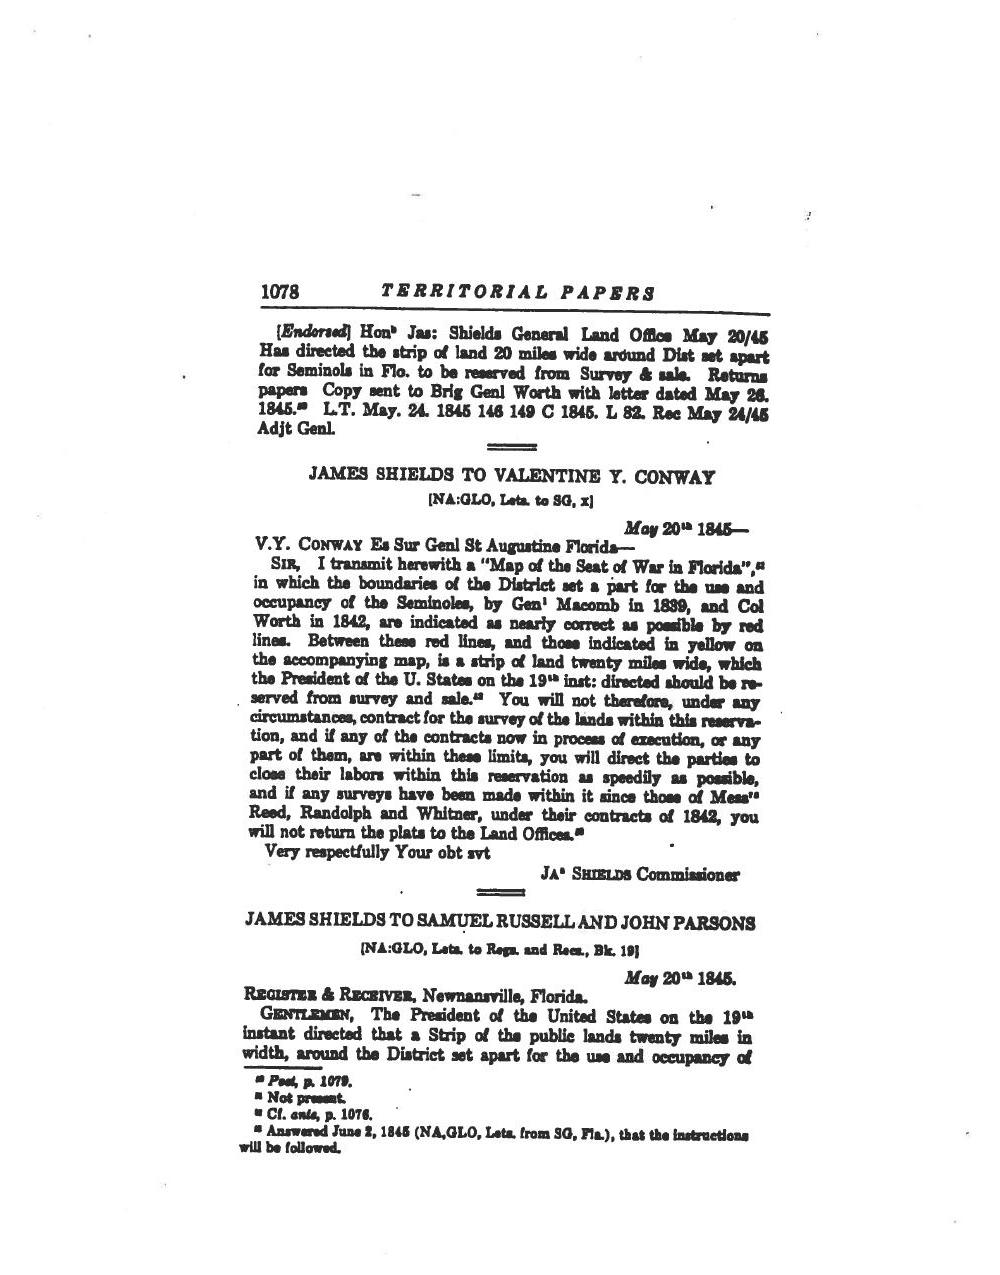 1000x1275 1845 Territorial Papers, in Council of the Original Miccosukee Simanolee Nation, by John S. Quarterman, for SpectraBusters.org, 21 November 2013